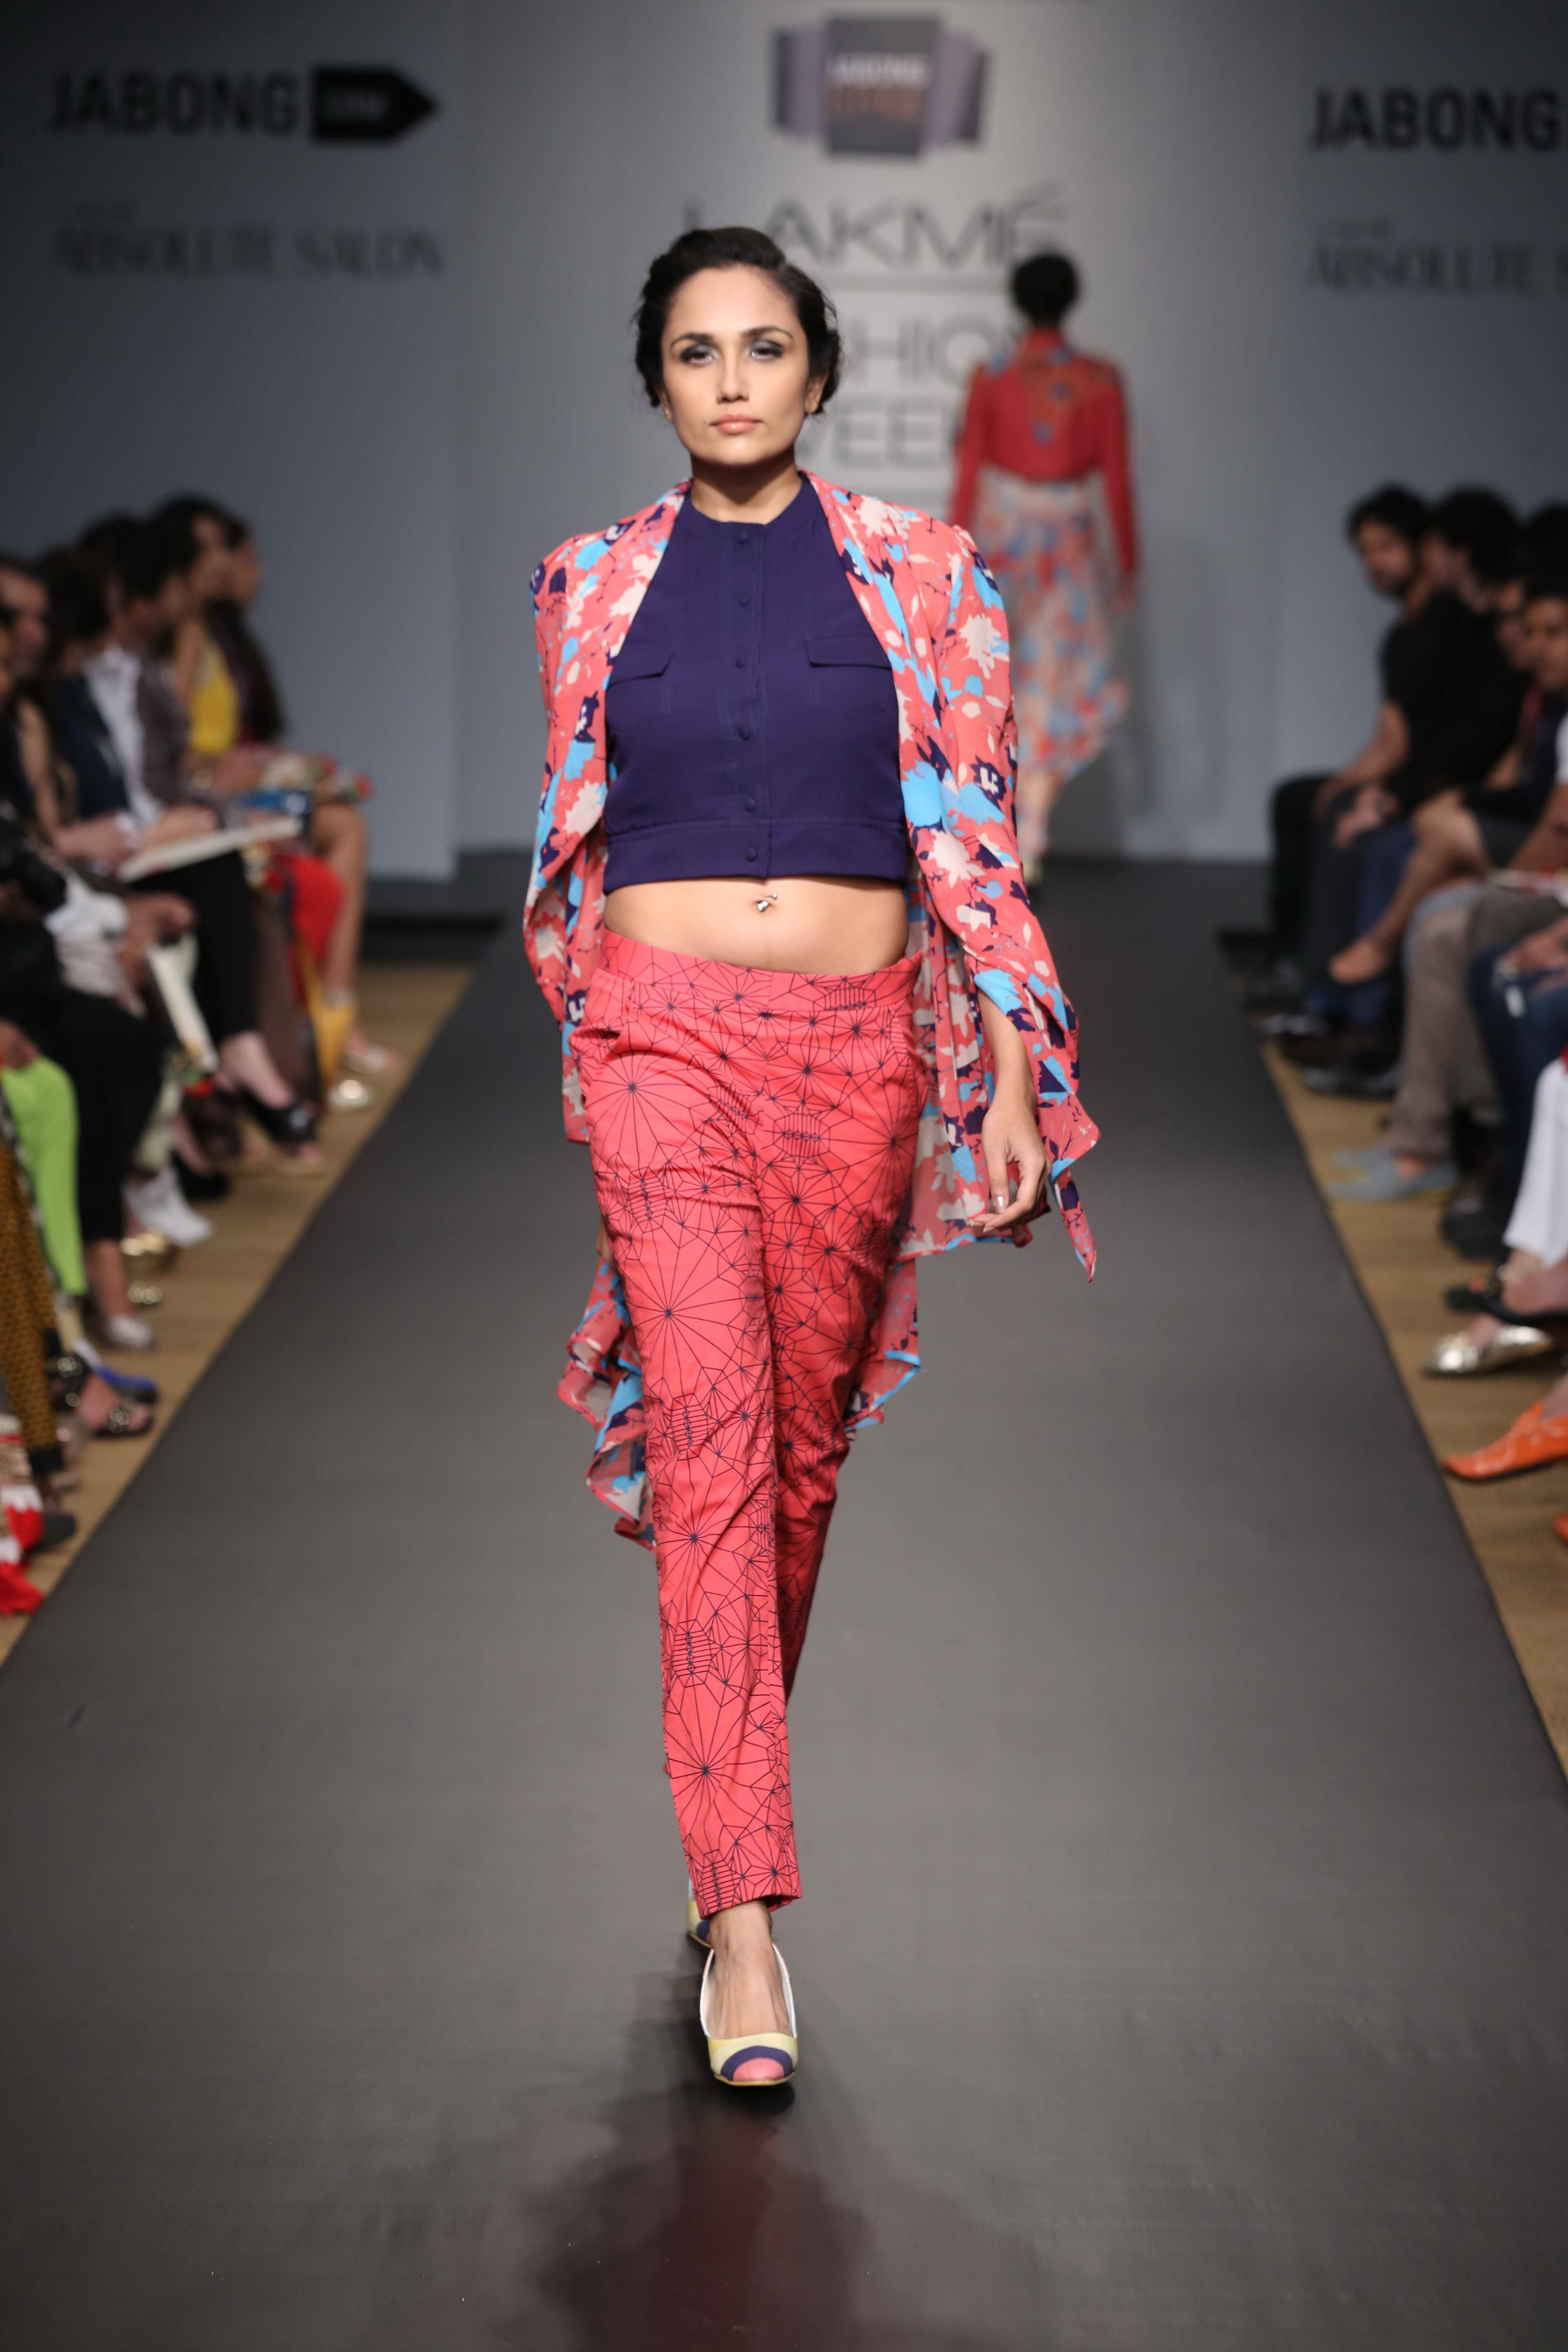 Asymmetrical cuts helped balance out the bold hues and added a whimsical touch to each piece. Kurti-dresses, tunics, jackets, tops and pants were the elegantly draped in fabrics like crepe, organza and sheer material and sported several prints both solid